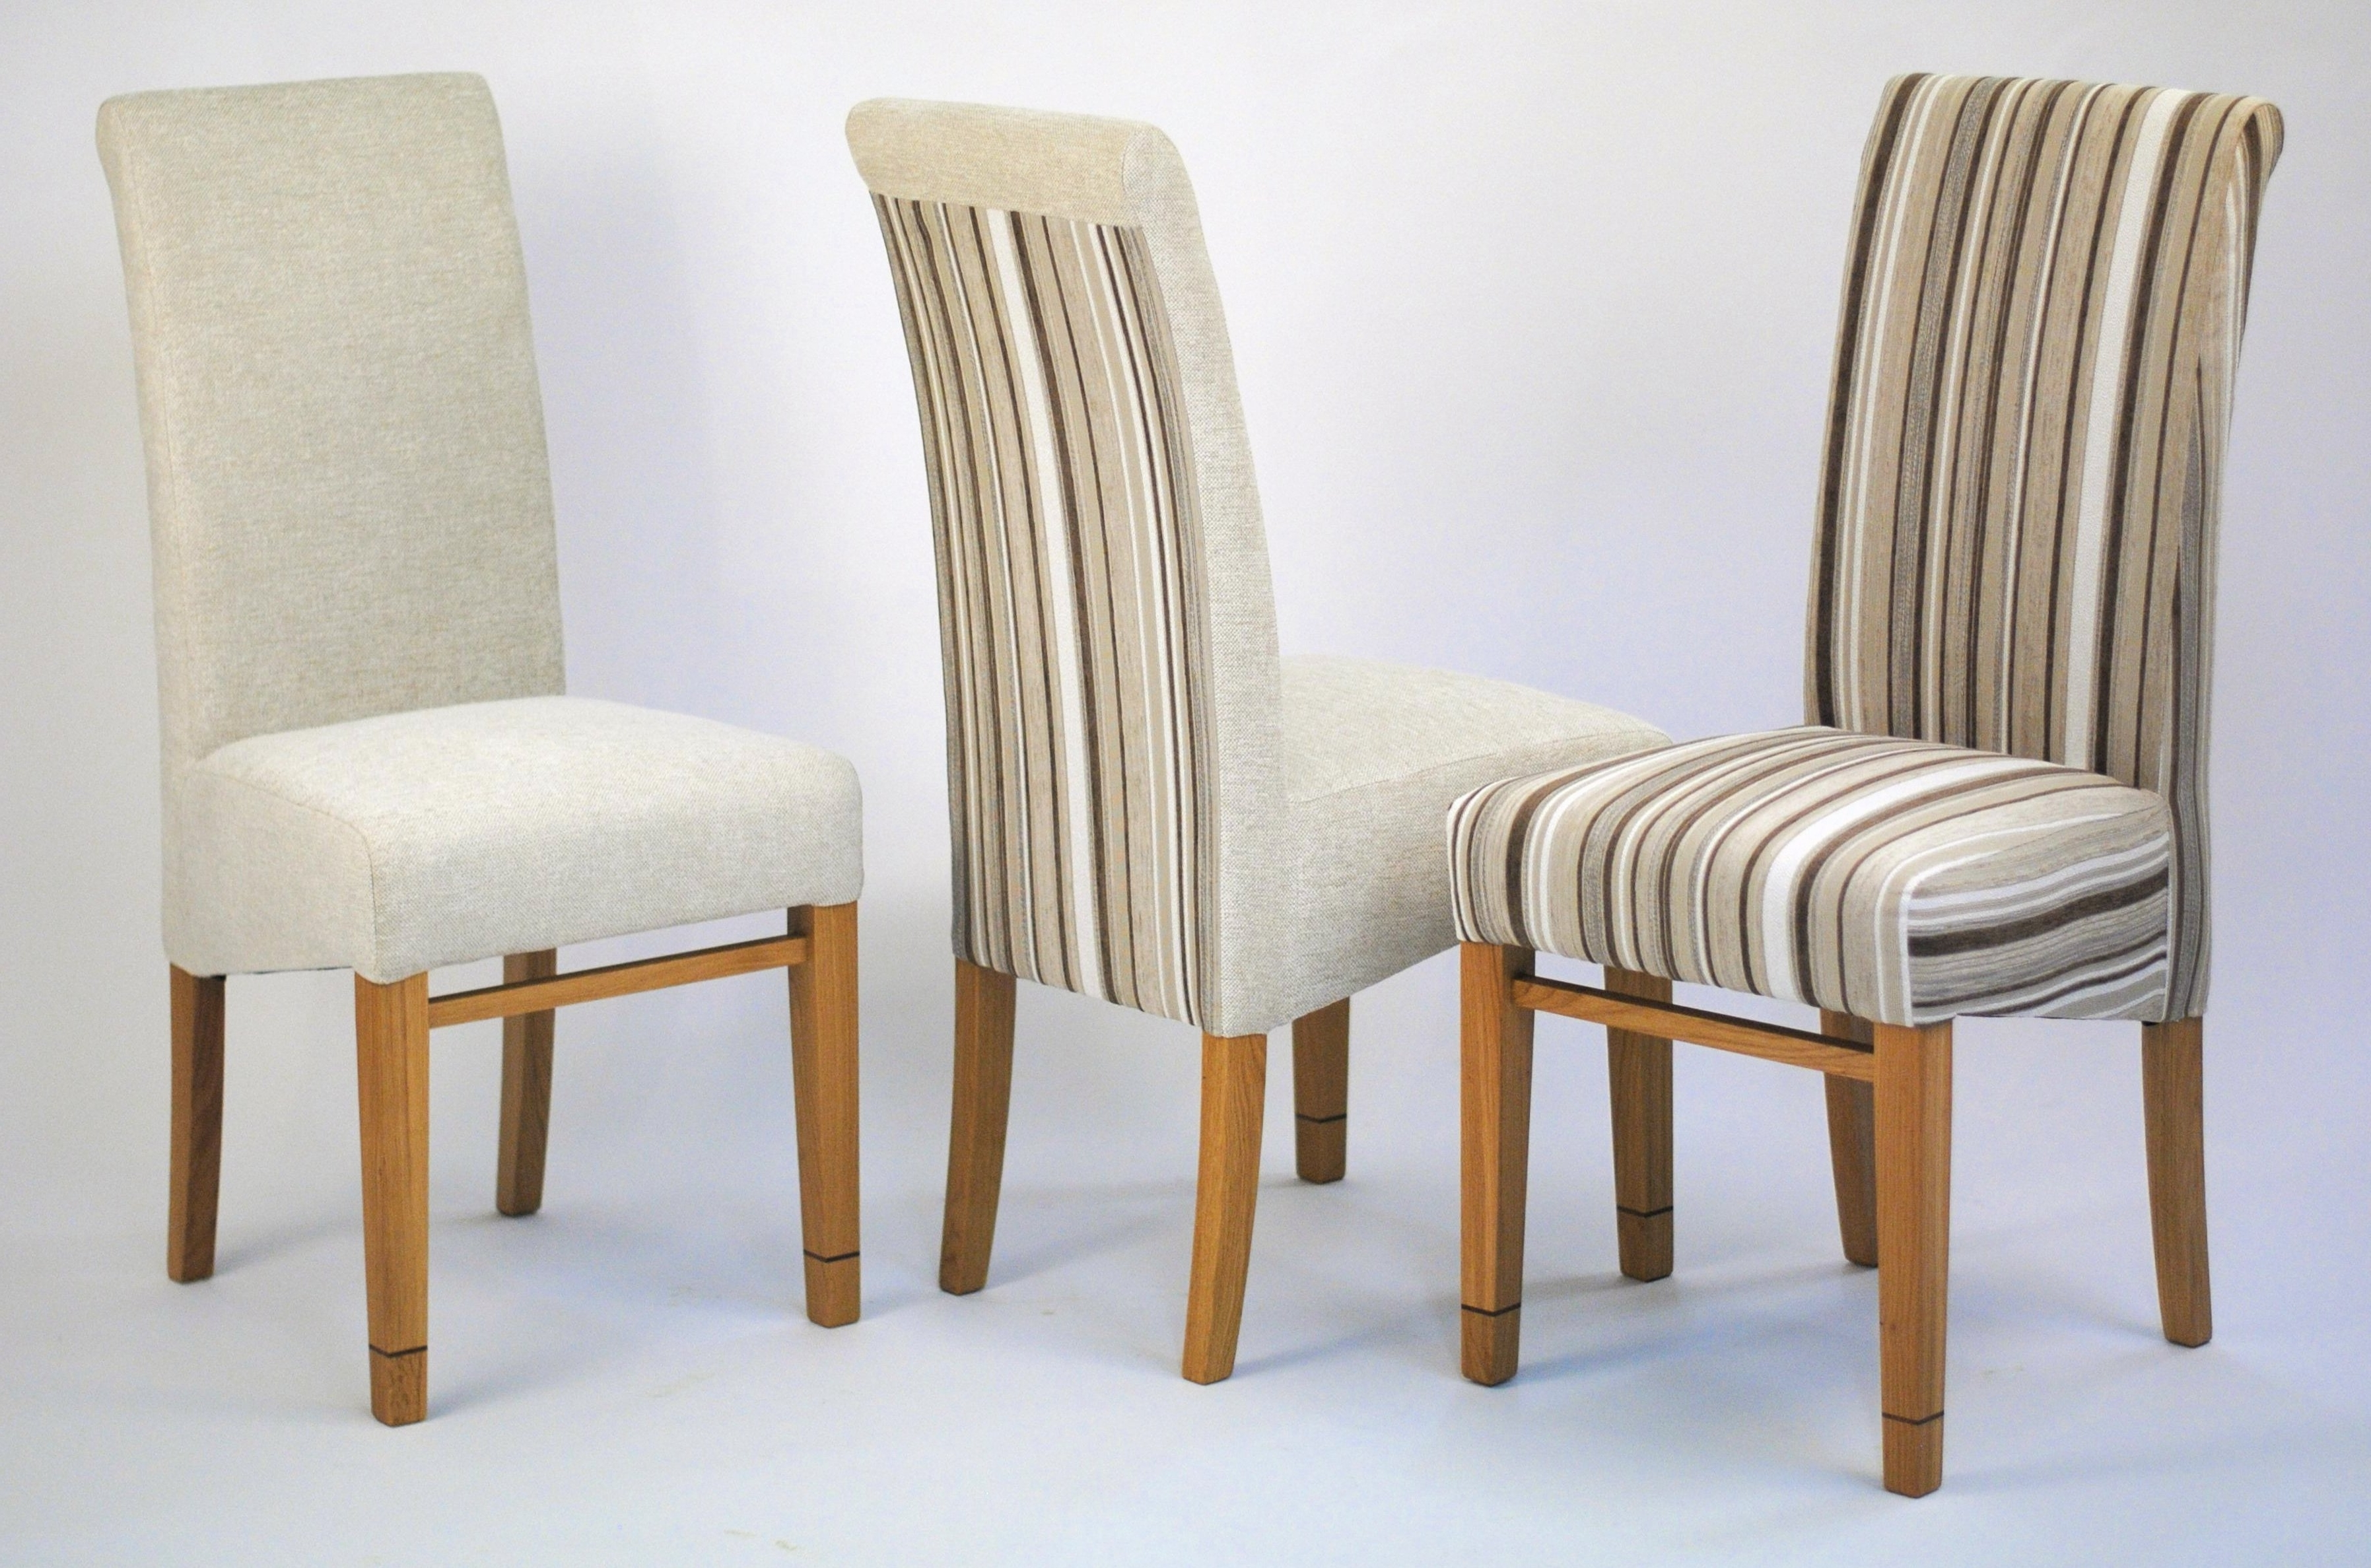 Dining Room Chairs Throughout Best And Newest Bow515 Upholstered Dining Chair (Gallery 8 of 25)